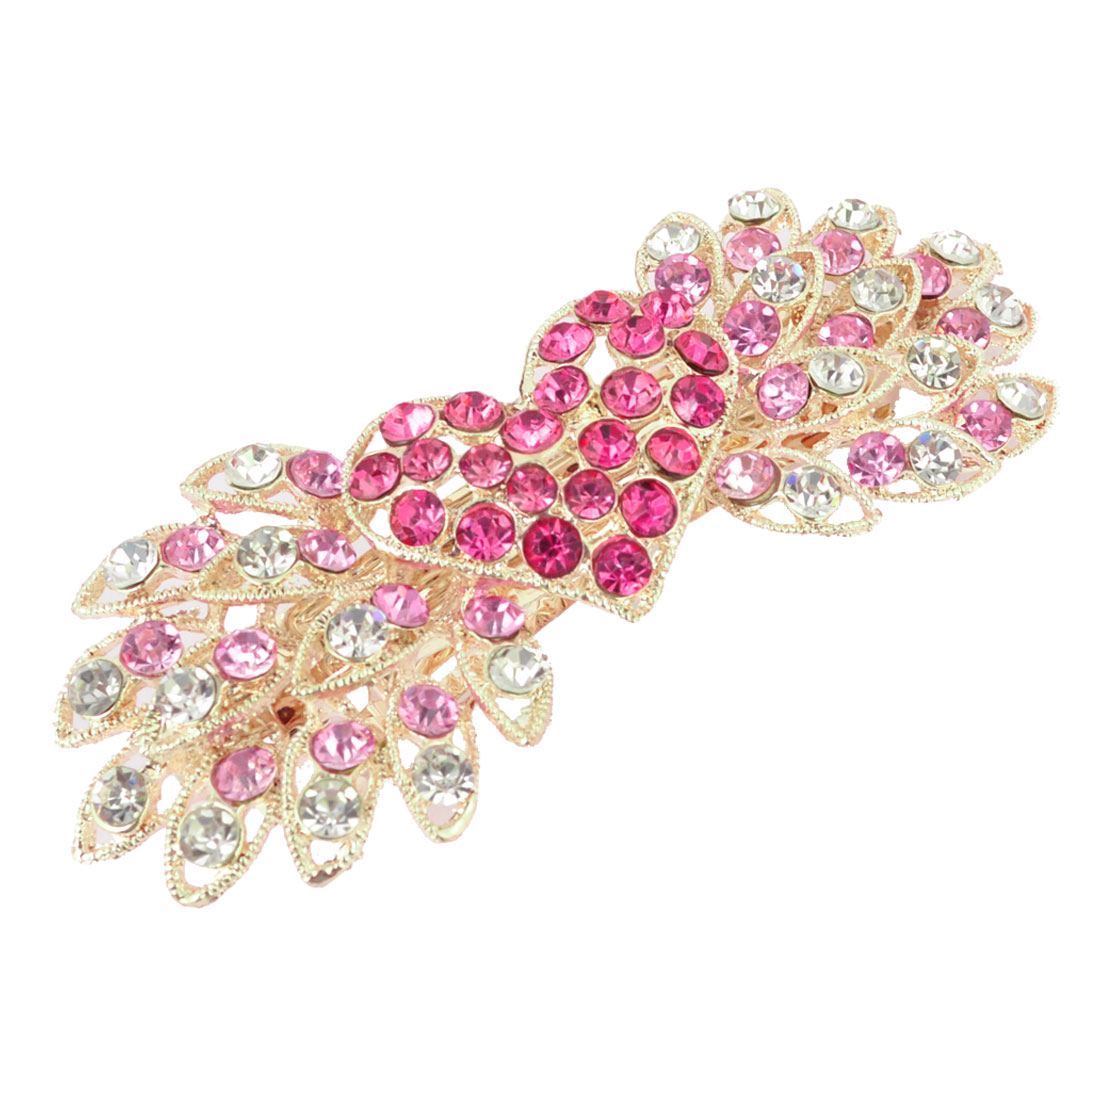 Pink Glittery Rhinestone Detail Flower Design Gold Tone Metal Hair French Clip Barrette for Lady Women